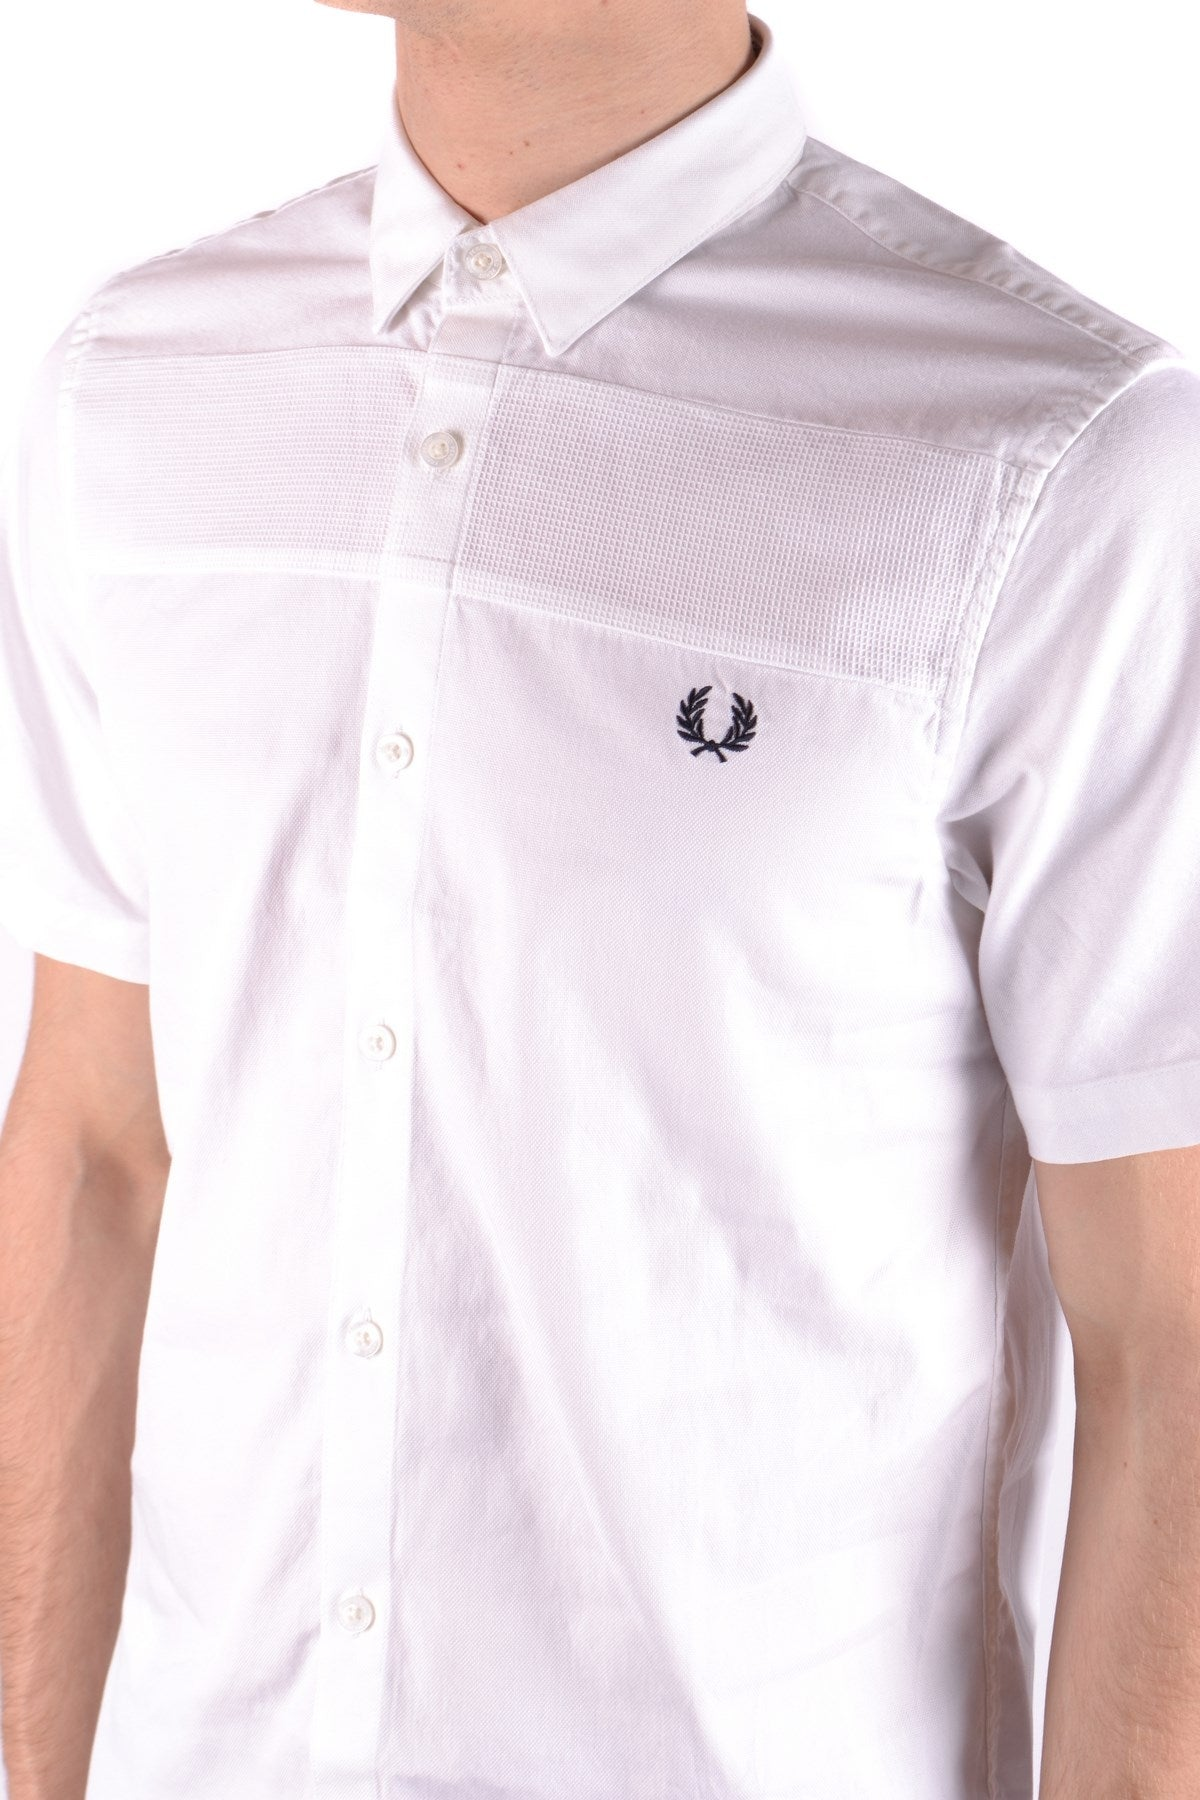 Shirt Fred Perry-Shirts - MAN-Product Details Terms: New With LabelYear: 2017Main Color: WhiteSeason: Spring / SummerMade In: ChinaManufacturer Part Number: M1540Size: IntGender: ManClothing Type: CamiciaComposition: Cotton 100%-Keyomi-Sook